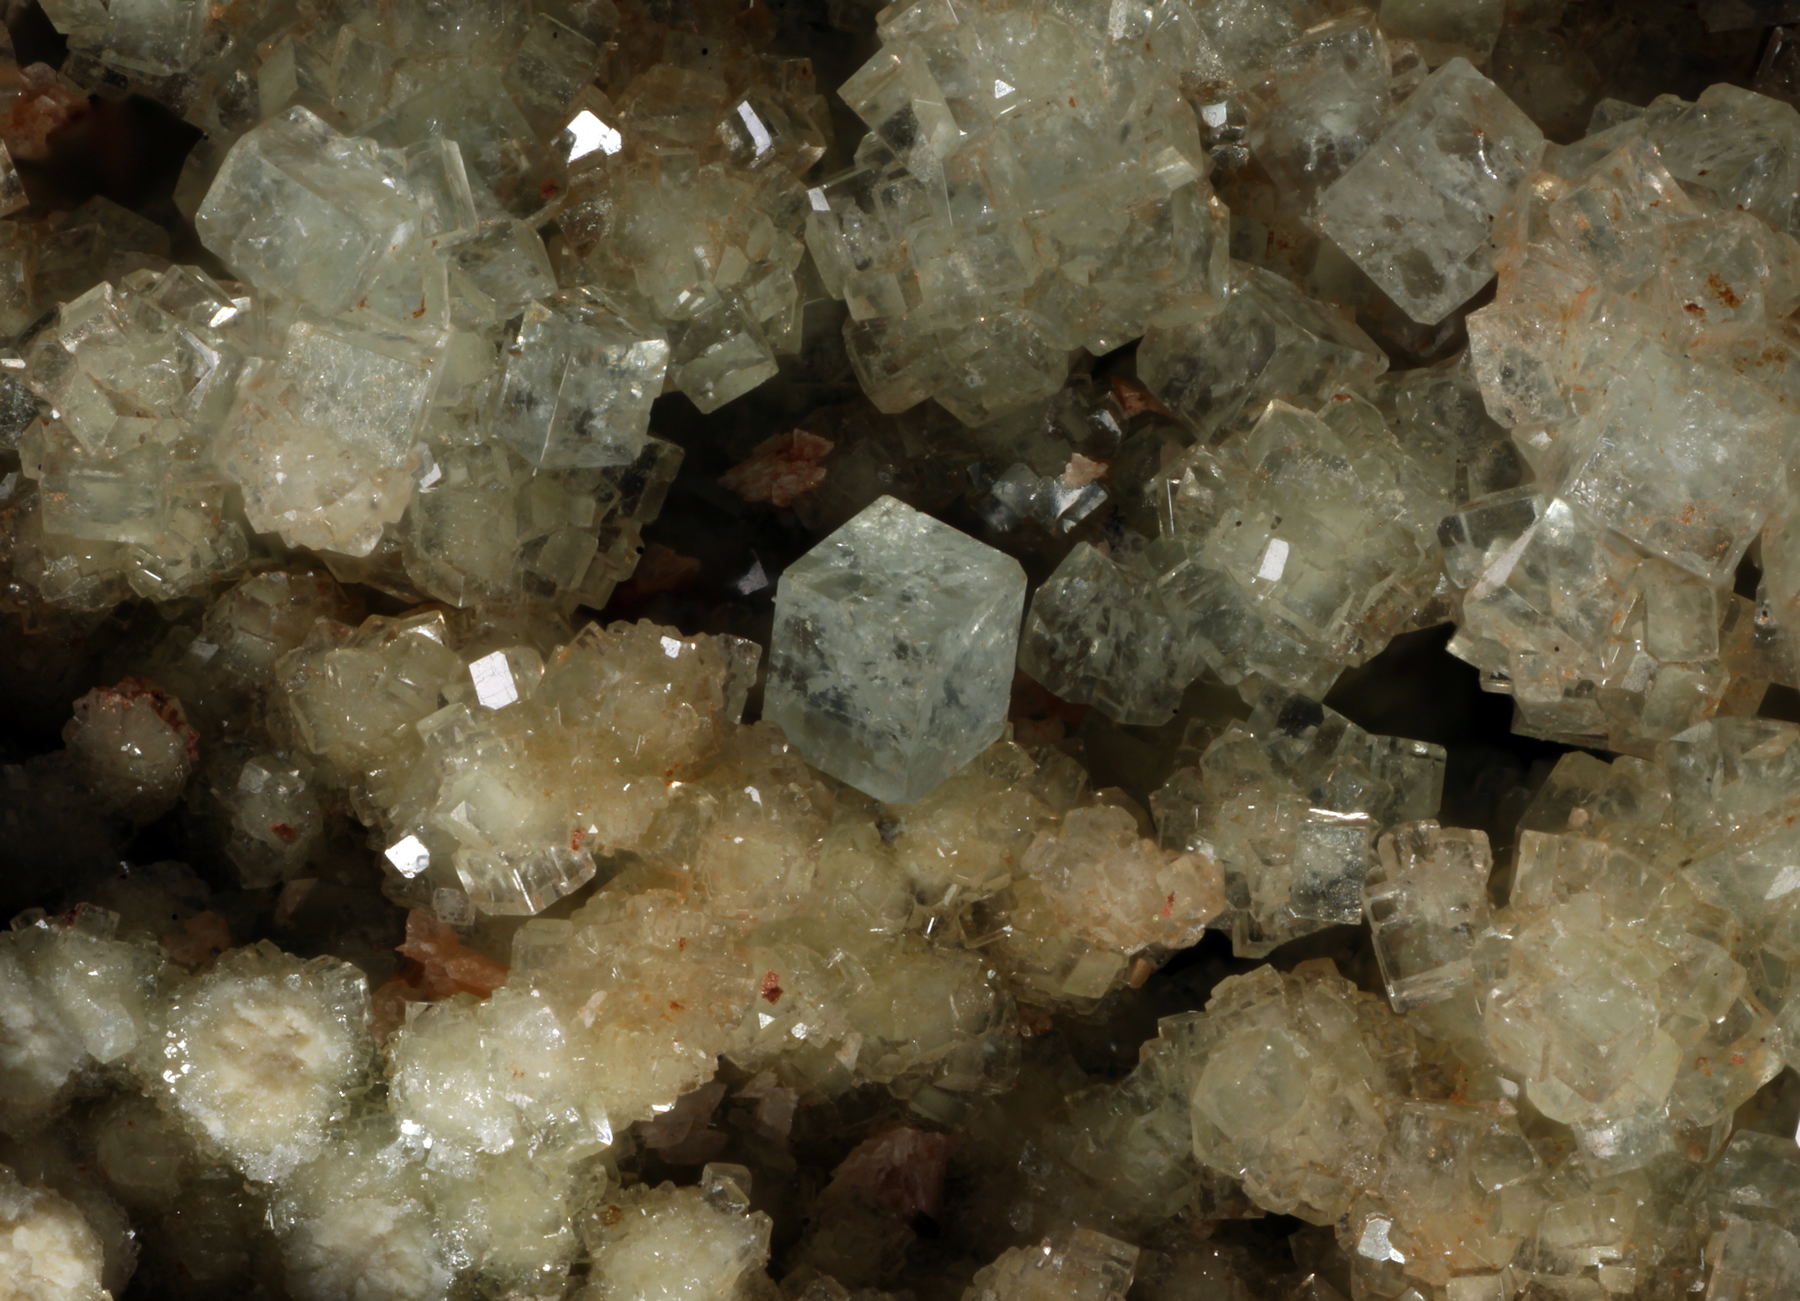 GemologyOnline.com • View topic - My Image Minerals Gallery... There ...